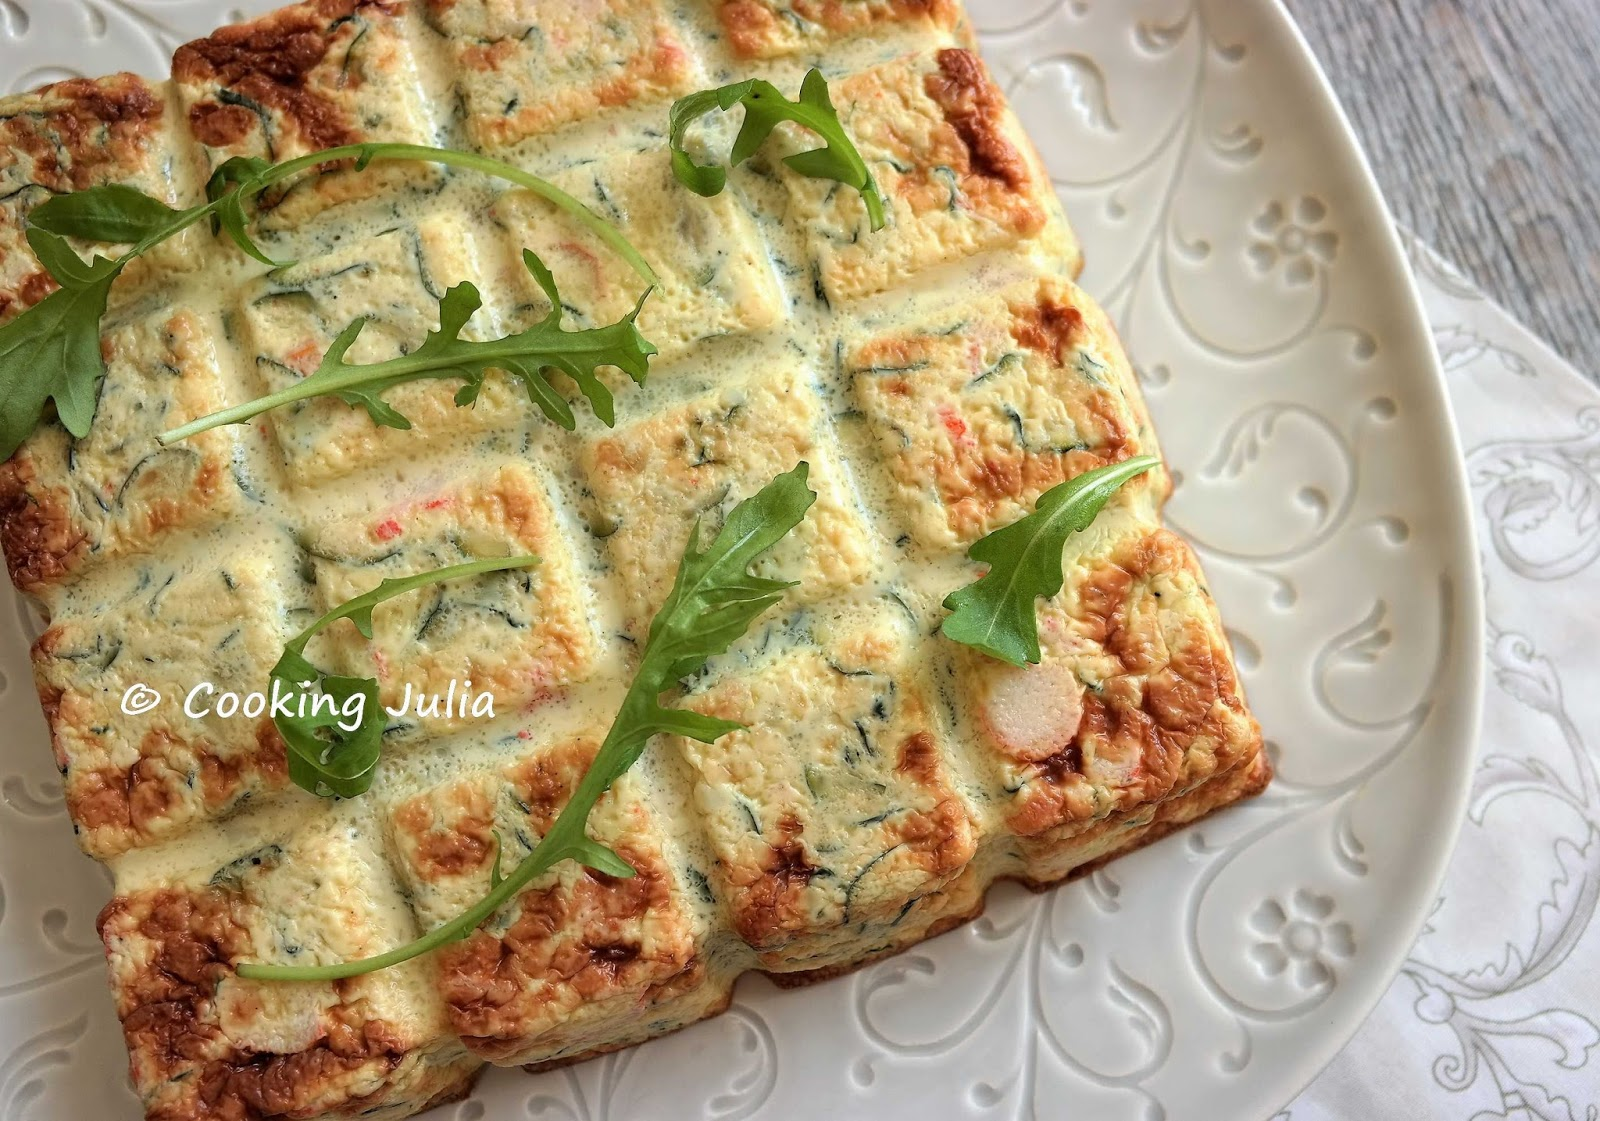 Cooking Julia Flan De Courgettes Au Surimi